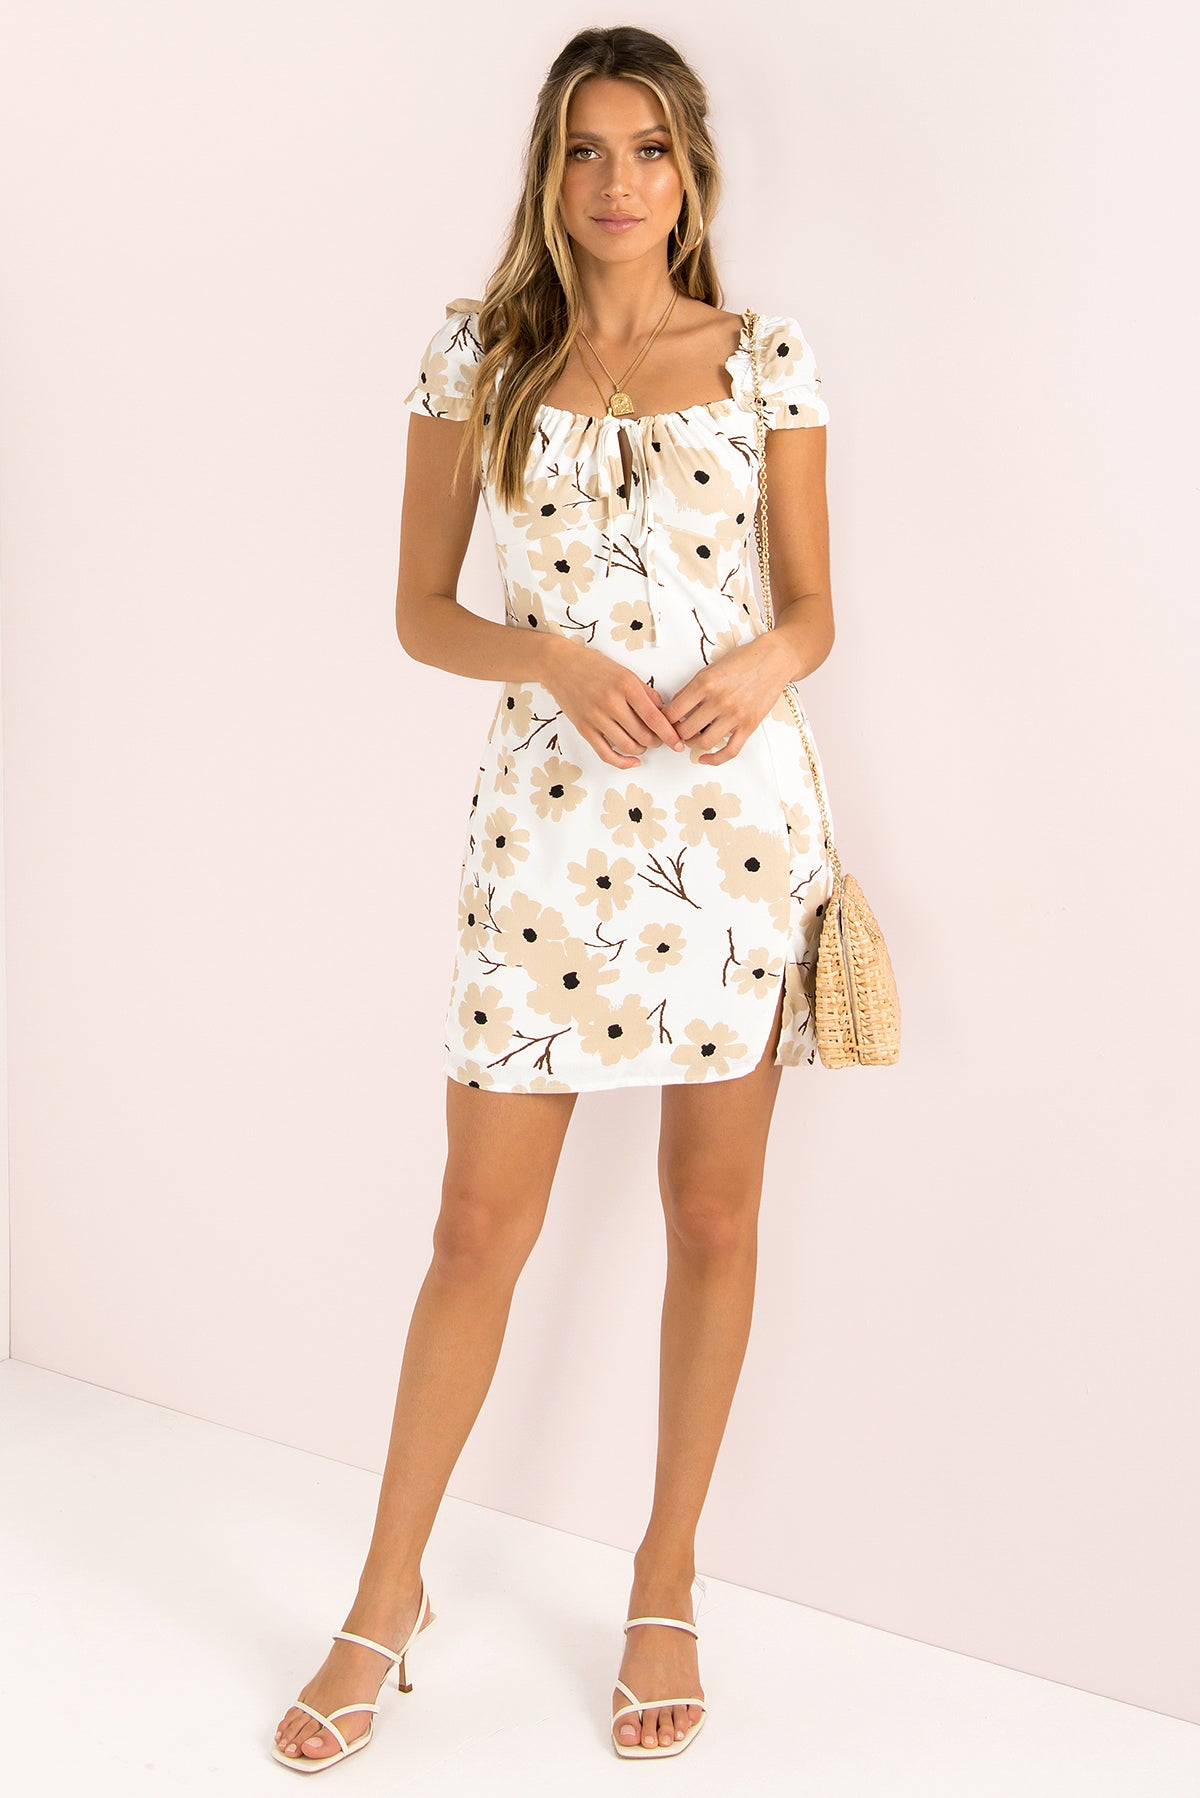 Audrey Dress / Beige Floral